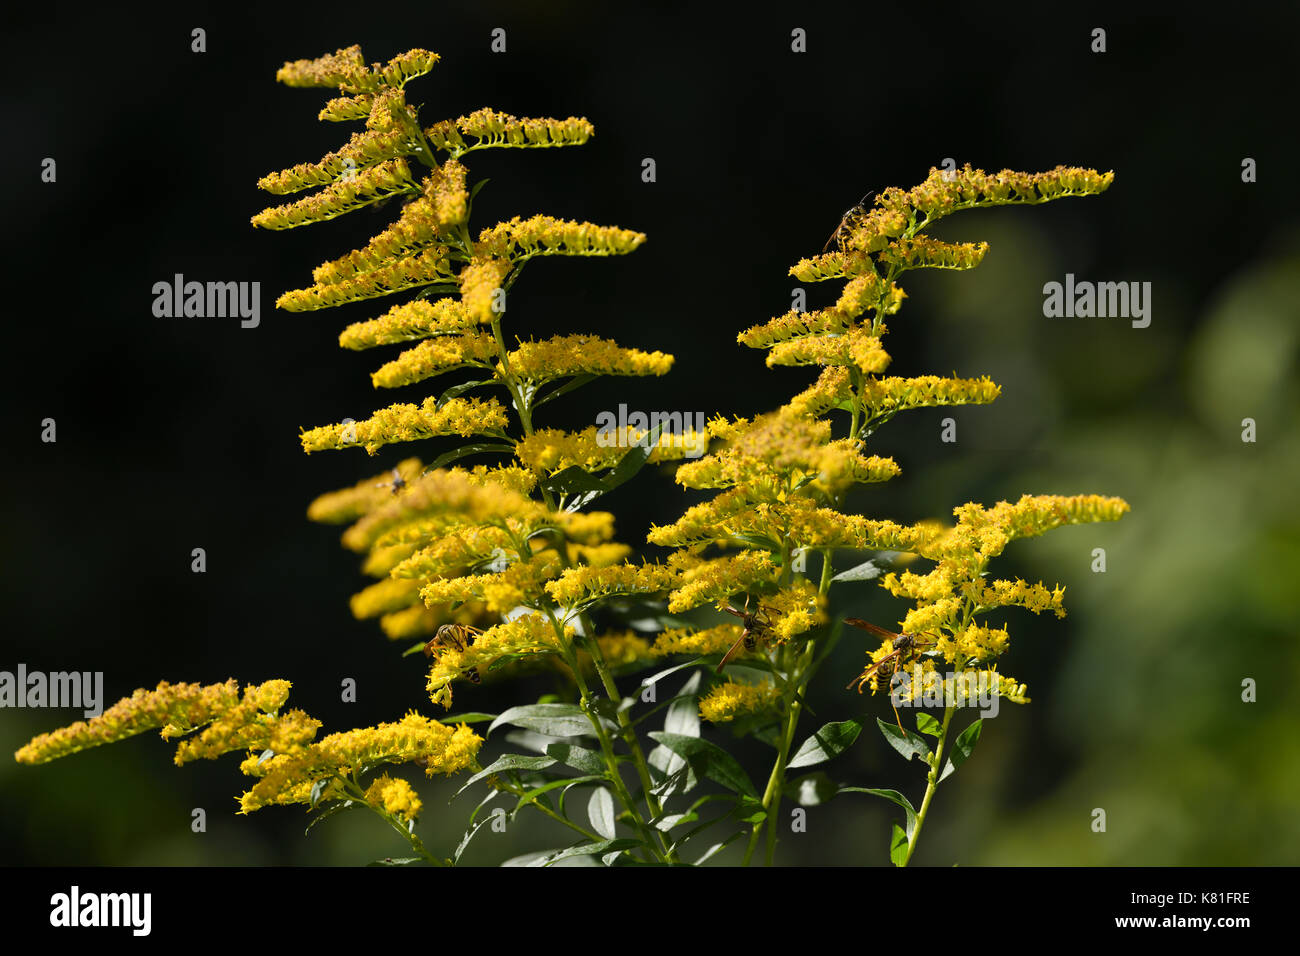 Paper Wasps And Yellowjacket Pollinating The Yellow Flowers Of A